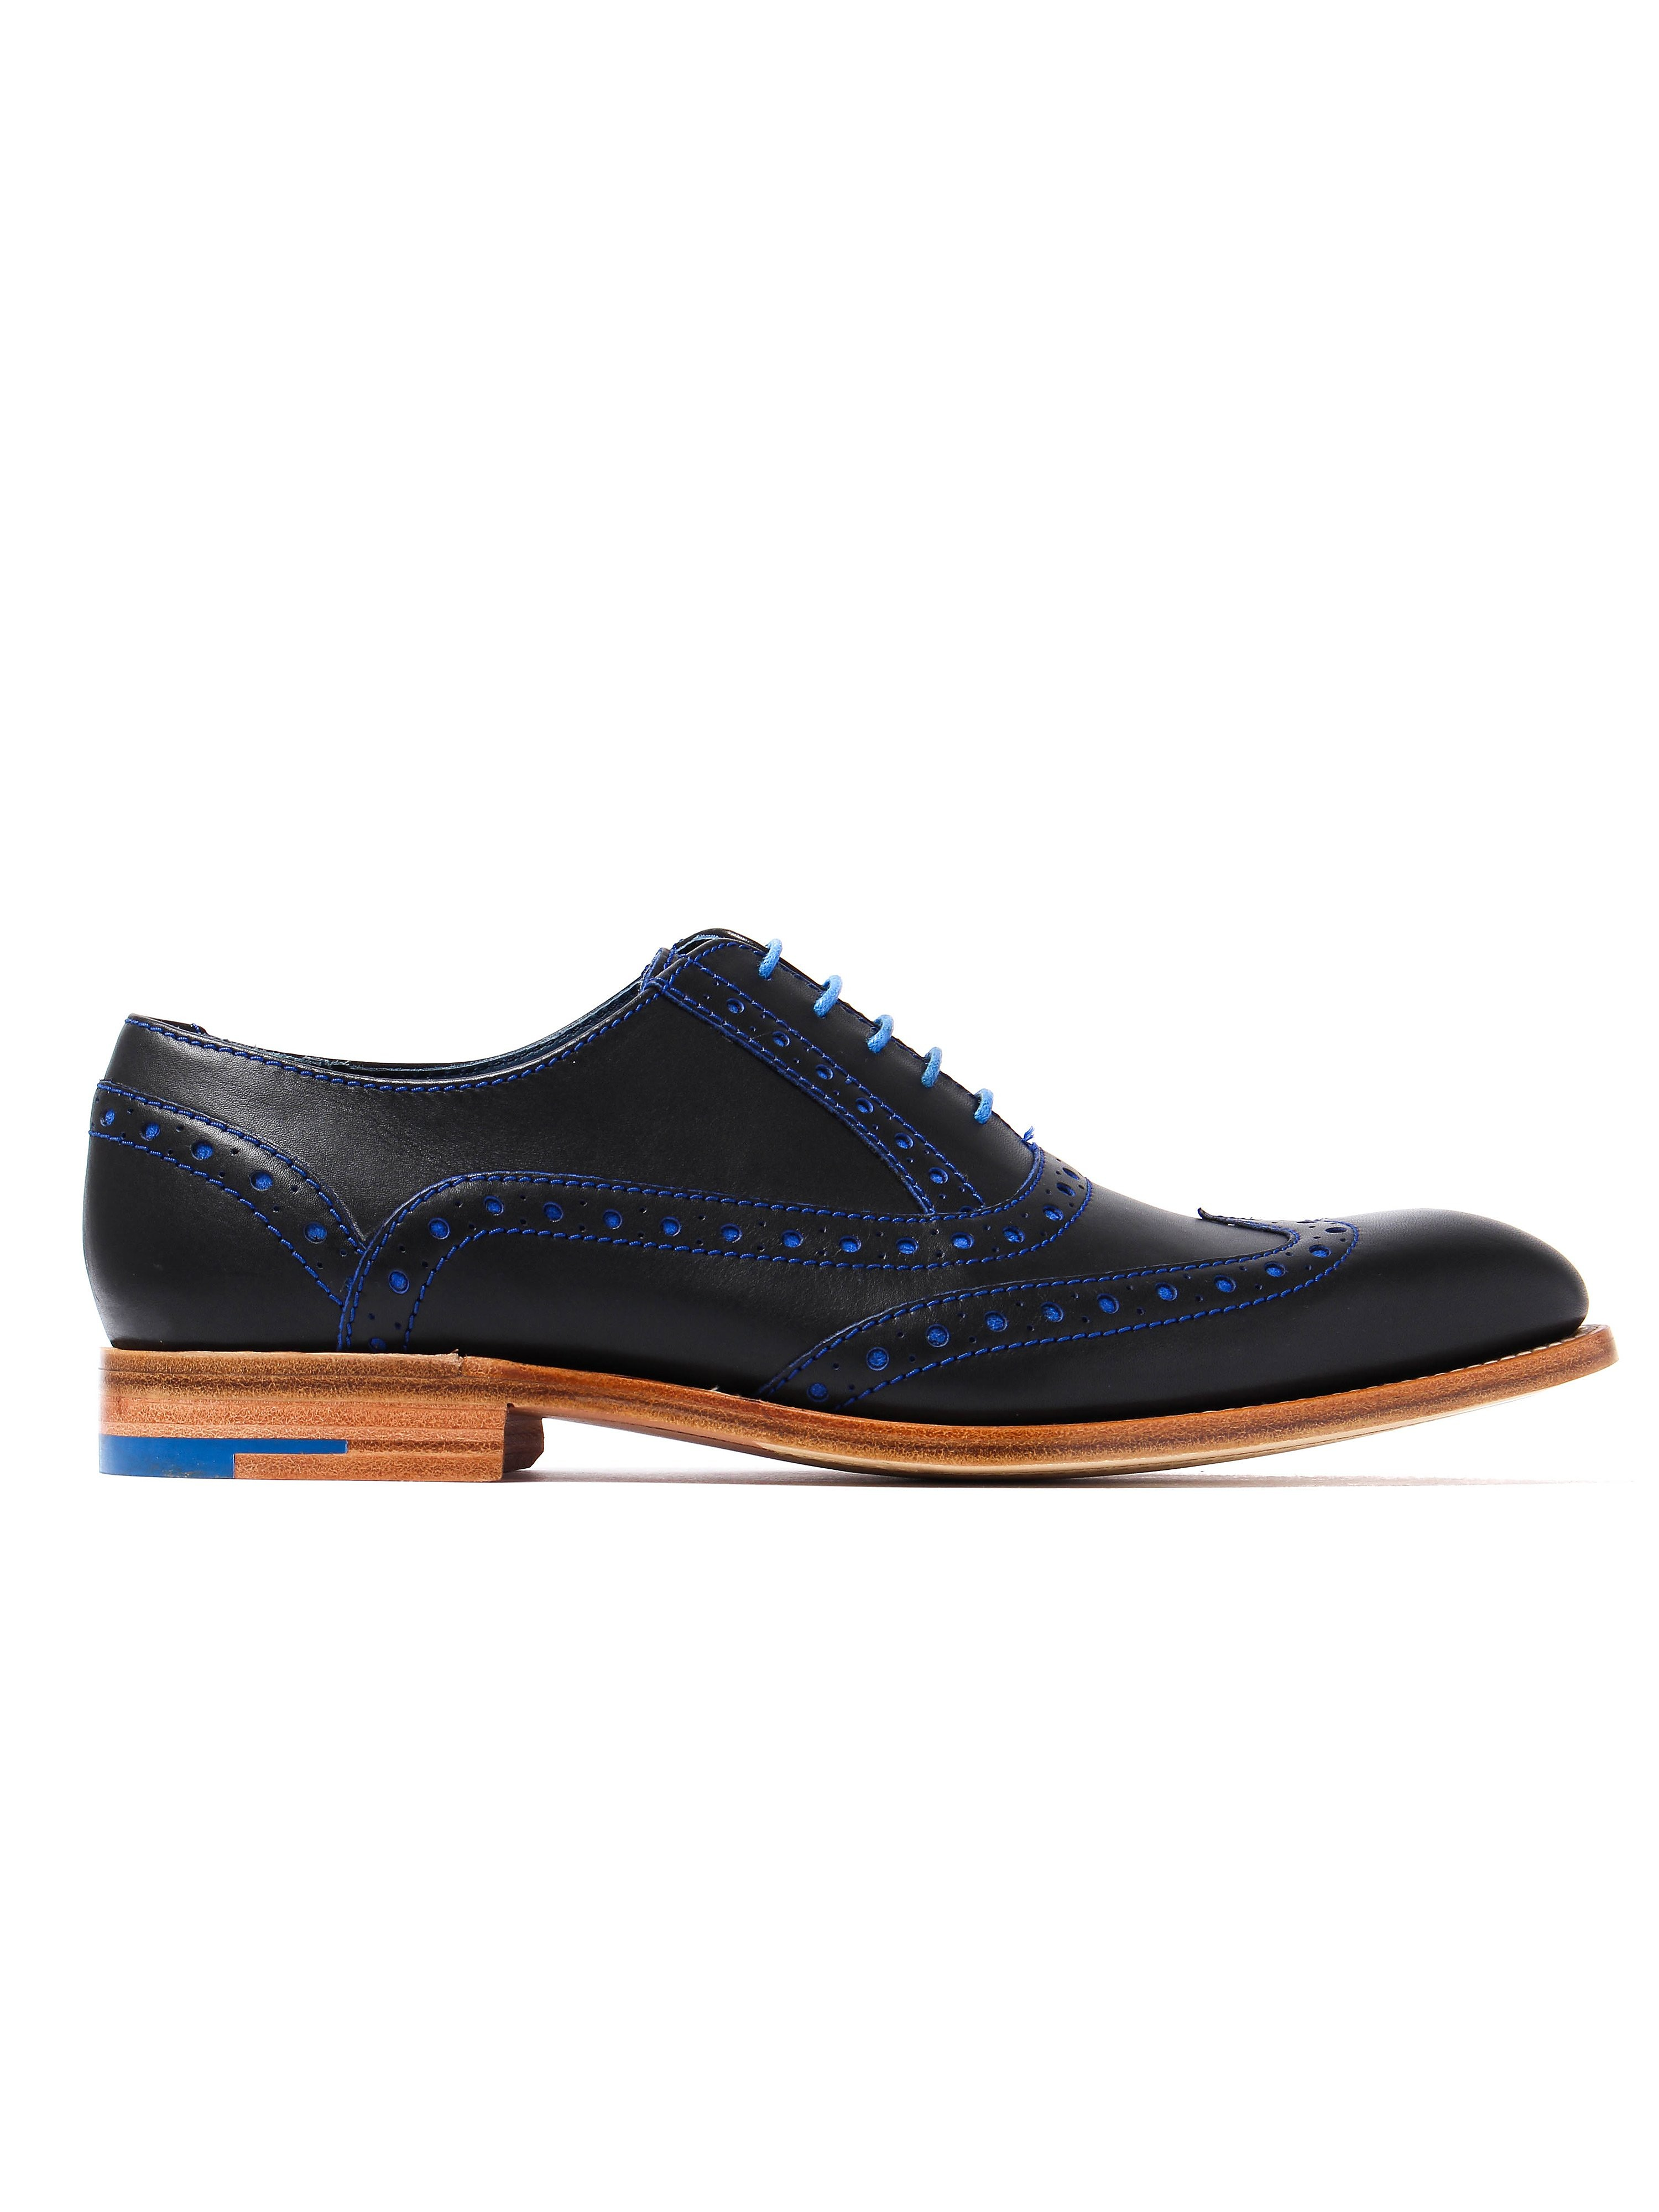 Barker Men's Grant Leather Oxford Brogues - Navy